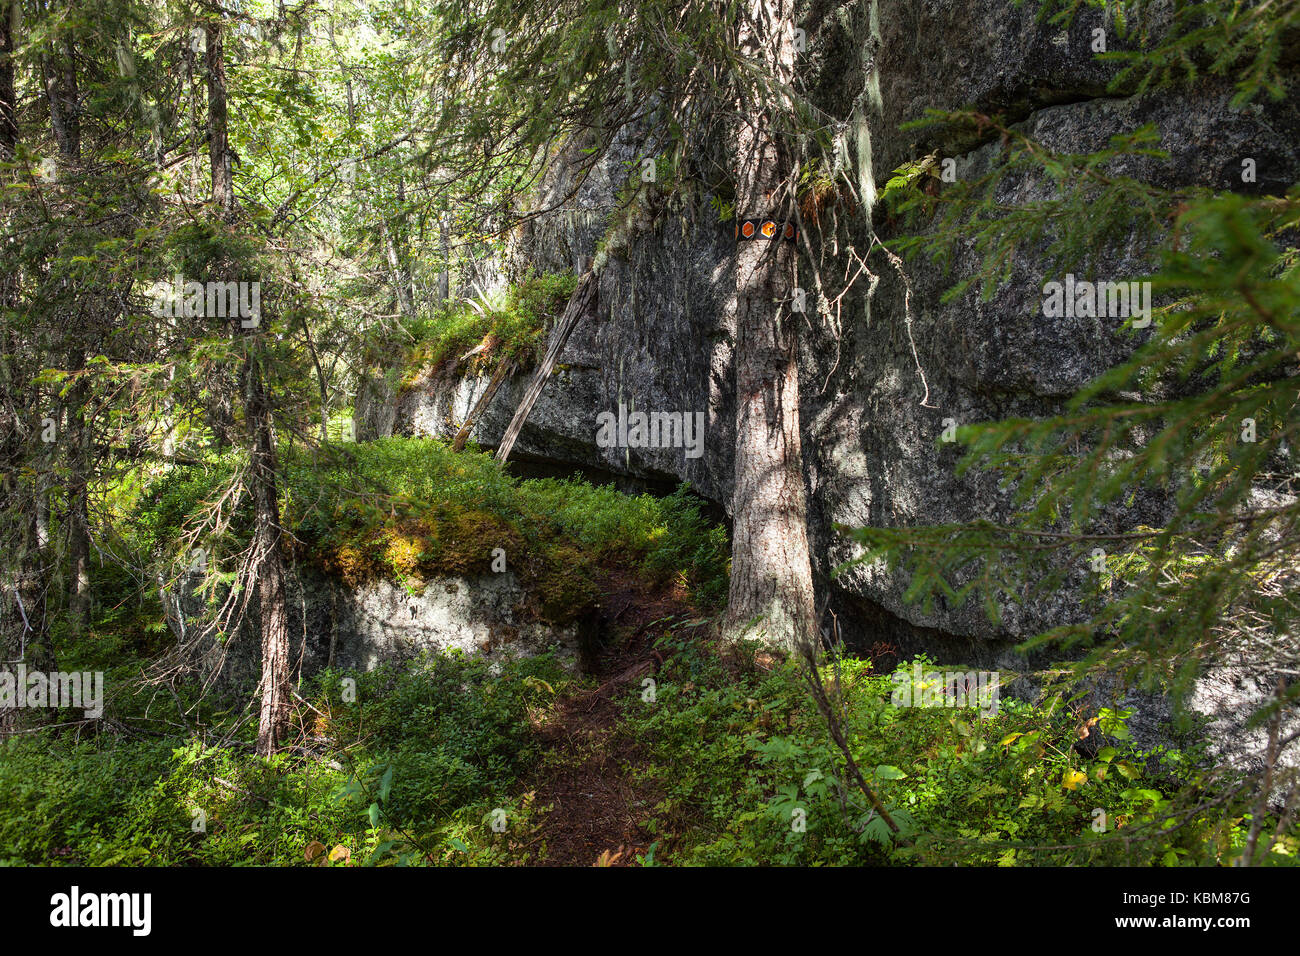 Huge boulders in a primeval forest, late seral forest. Path and signs. - Stock Image